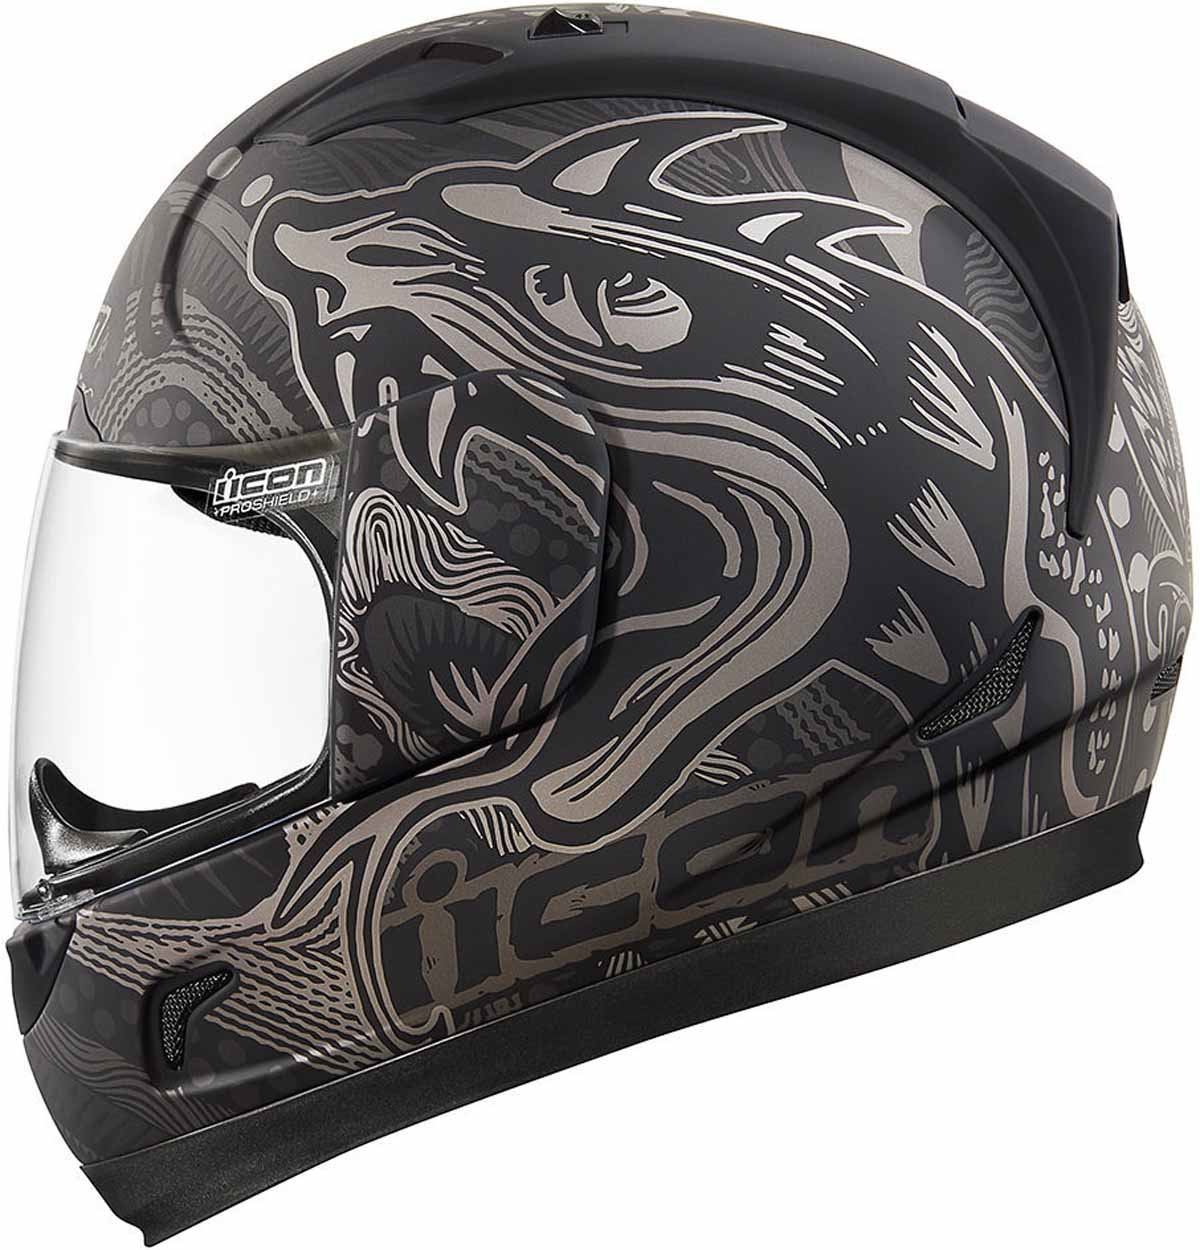 ICON-Alliance-Helmet-Full-Face-Full-Removable-Hydradry-Liner-DOT-XS-3XL